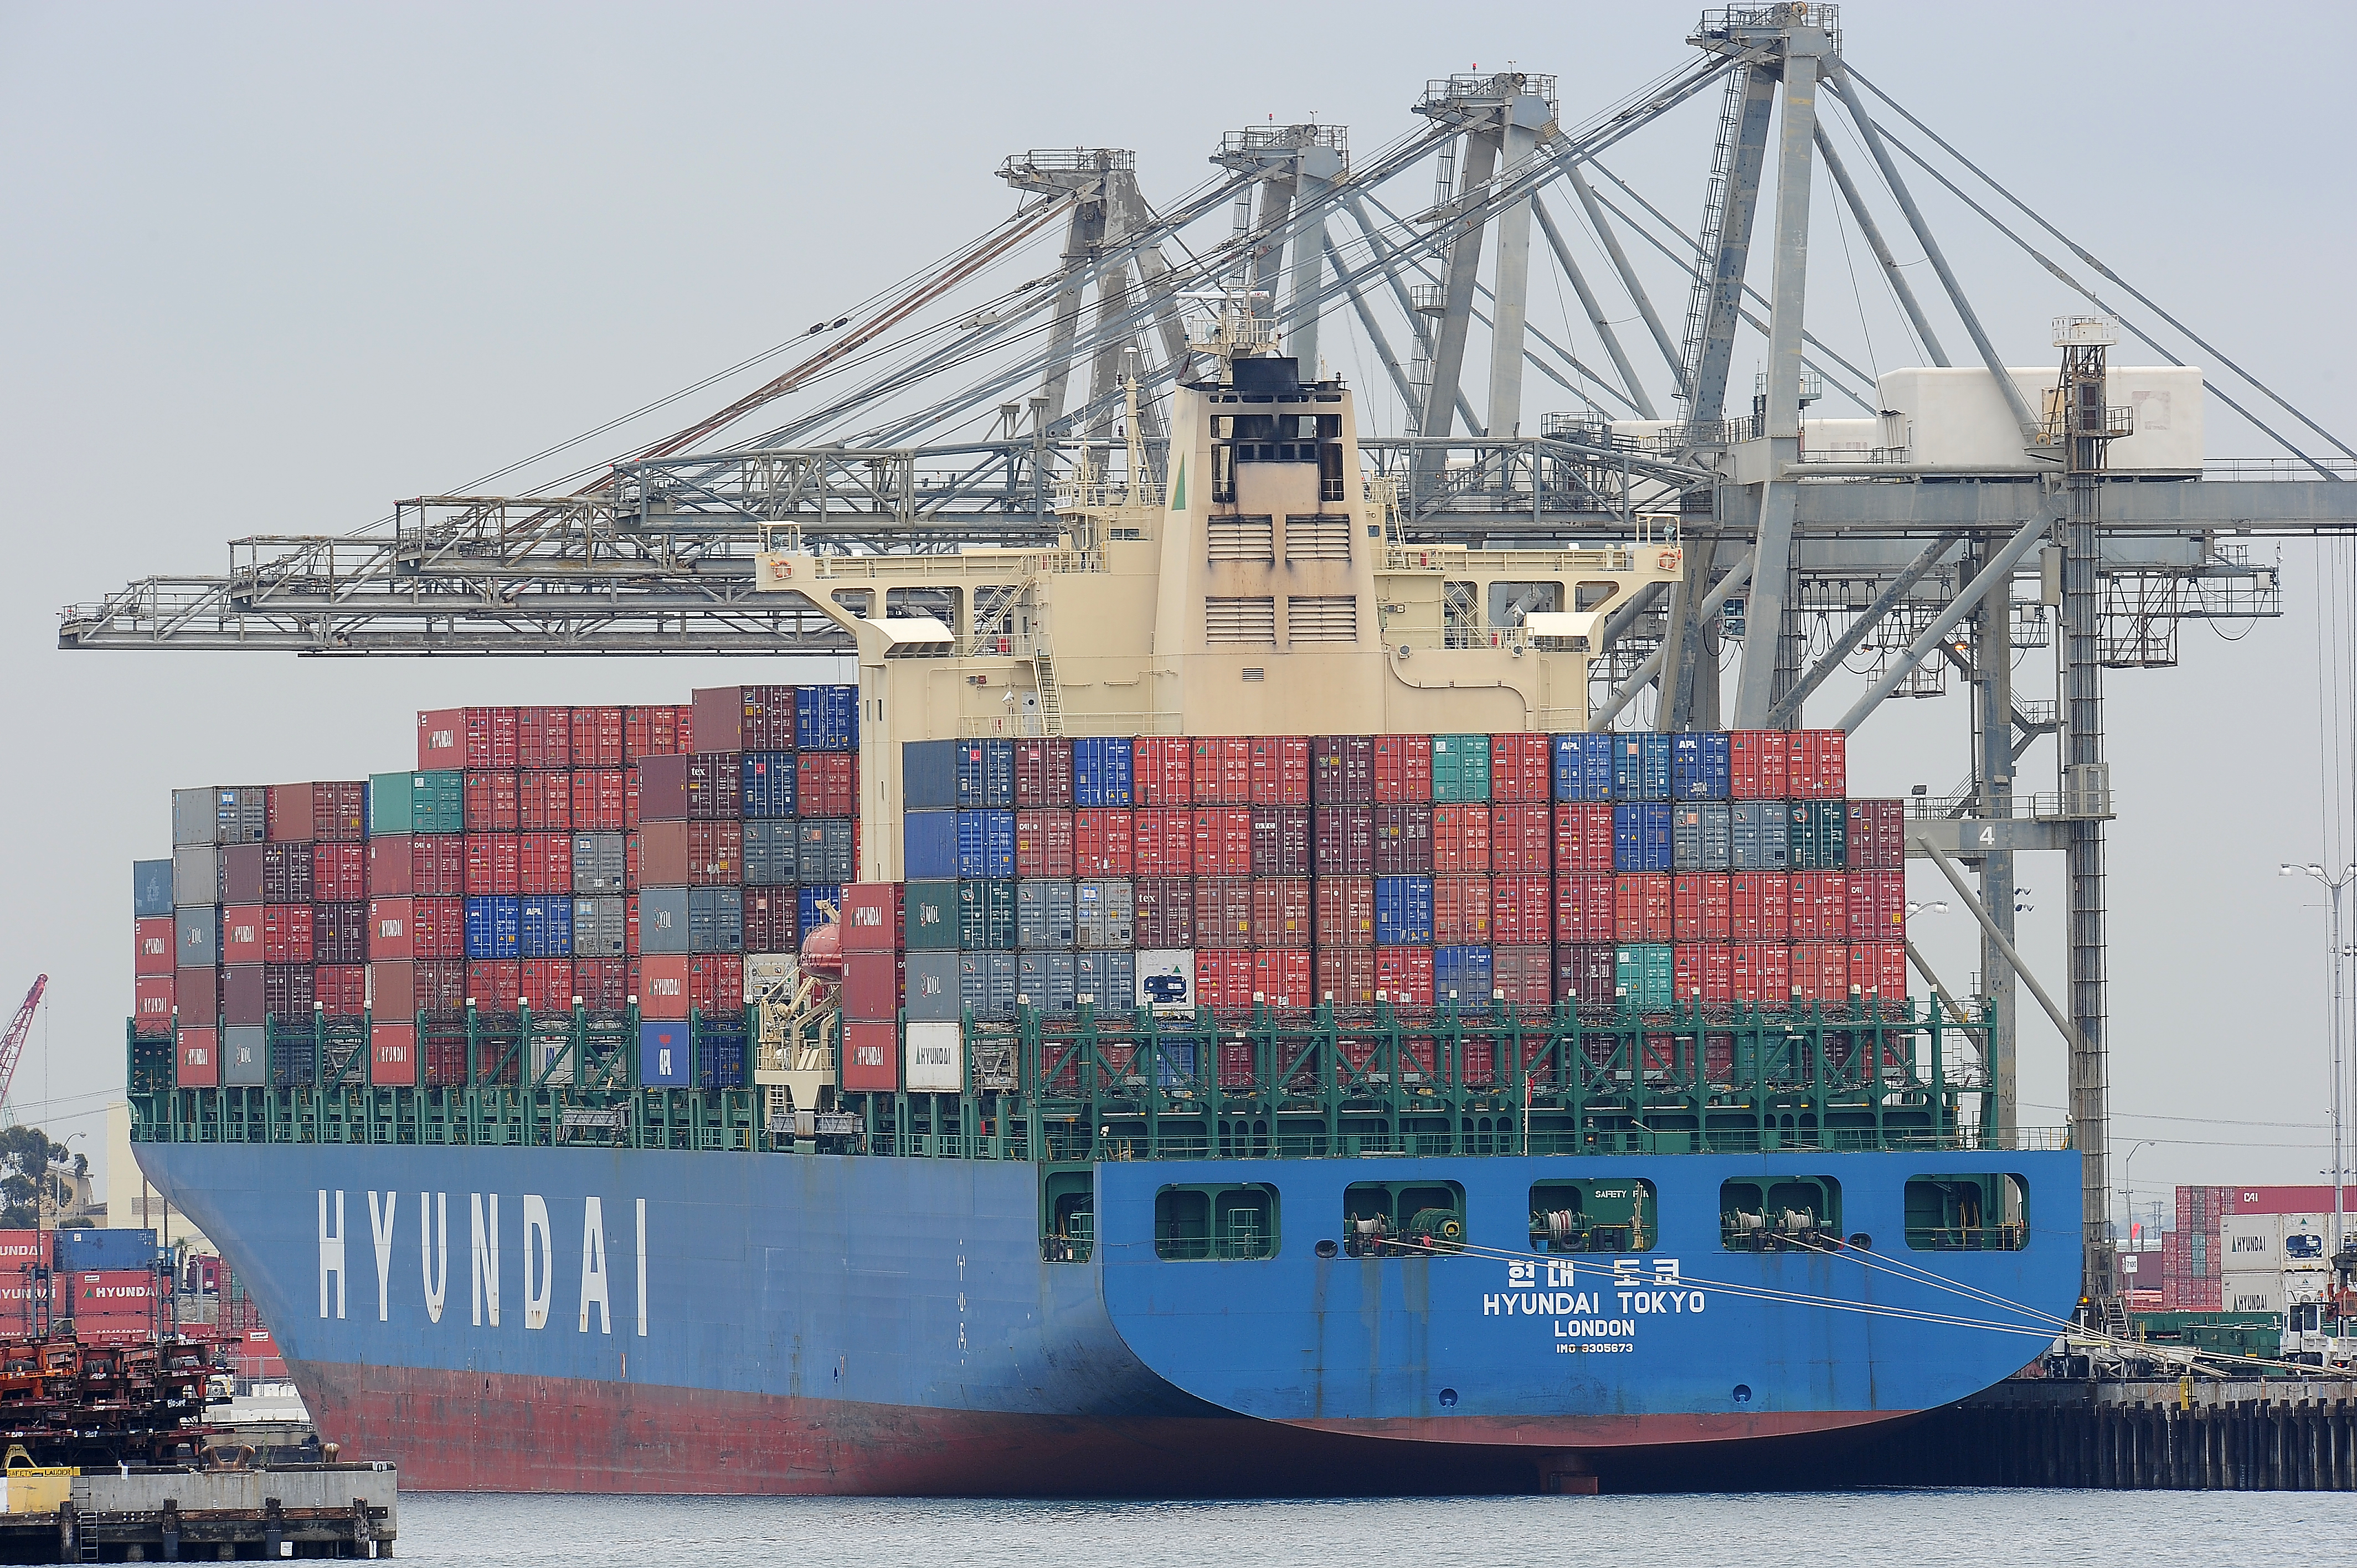 A container ship being unloaded is visib